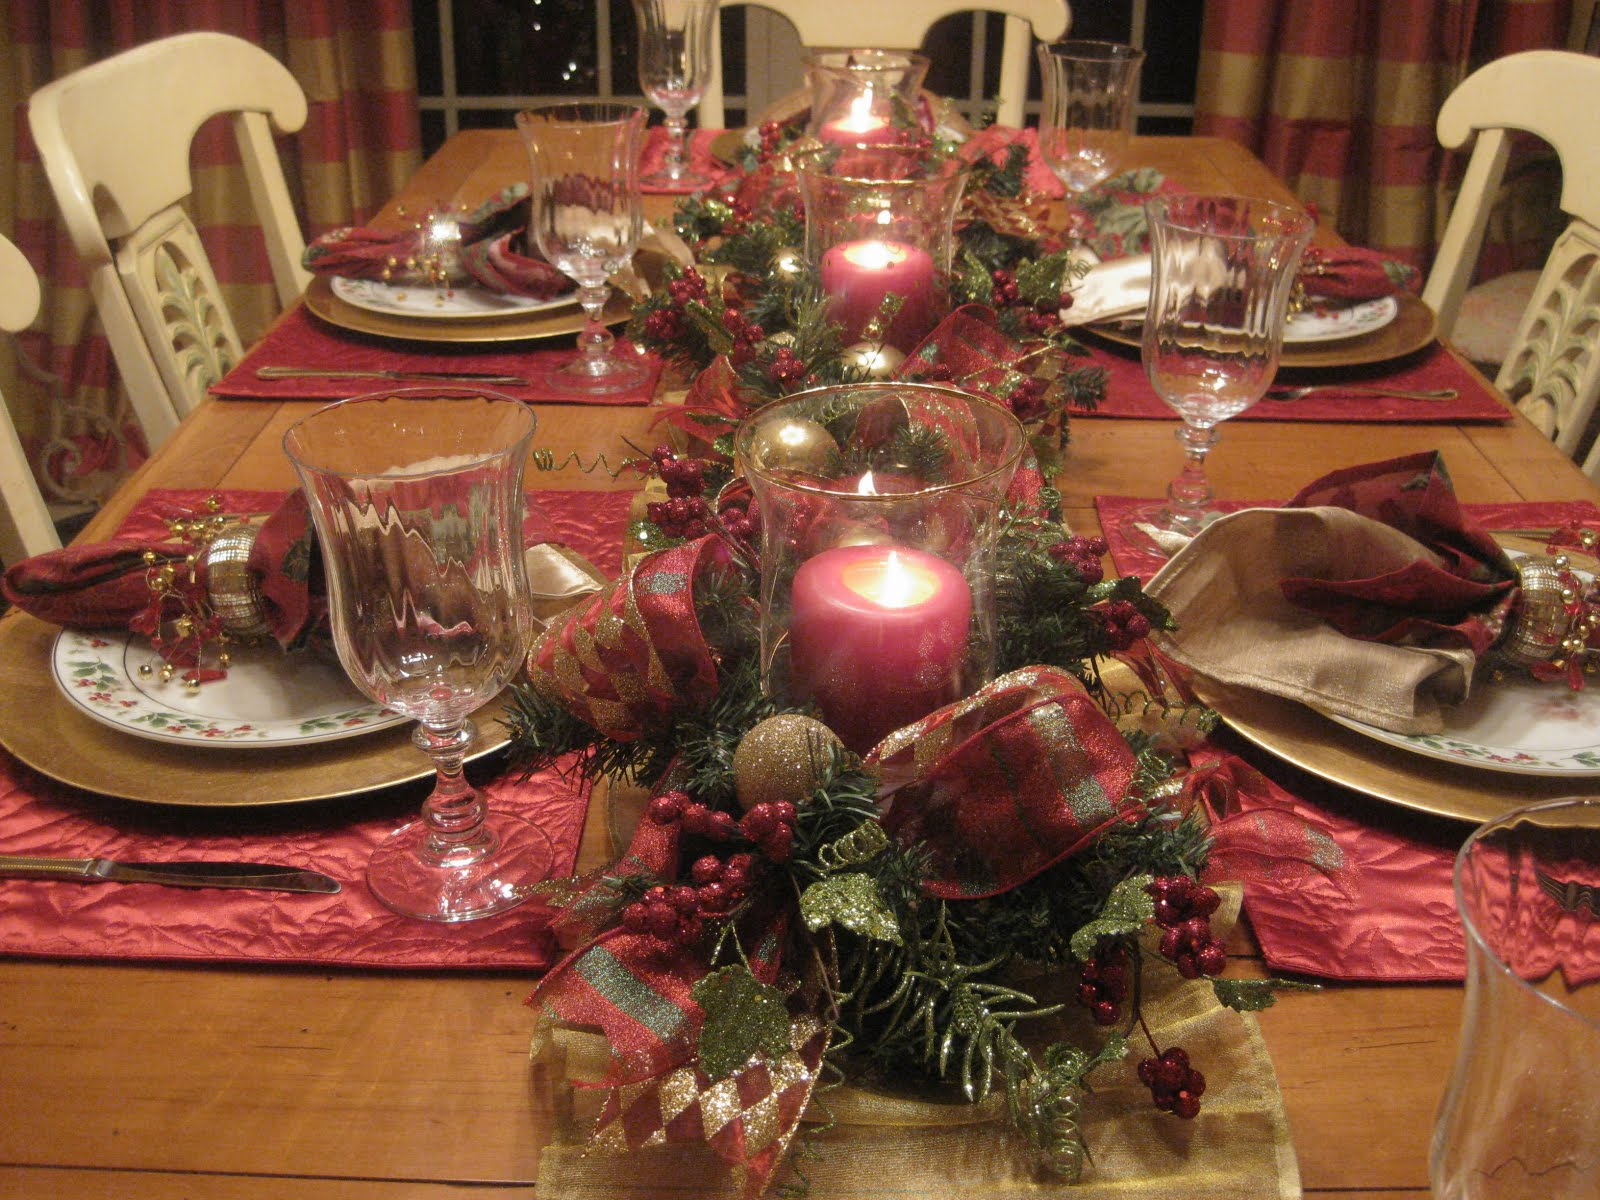 Kristen's Creations: ~~Christmas Day Tablescapes~~